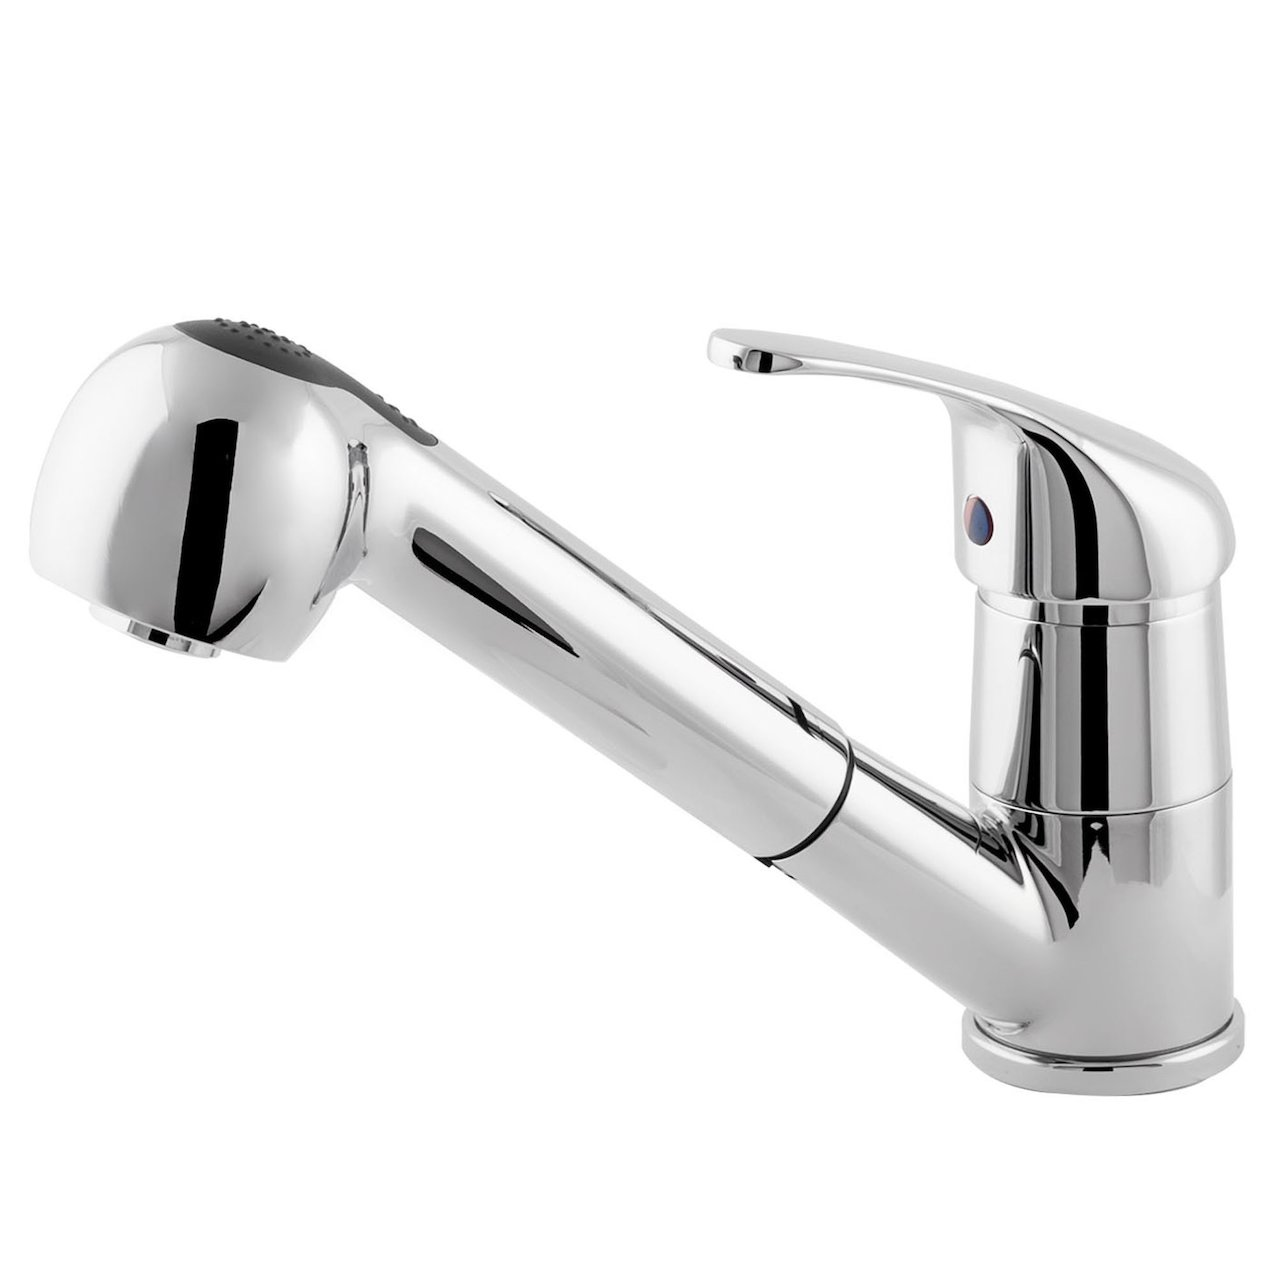 Sink mixer with pull-out spray Athena